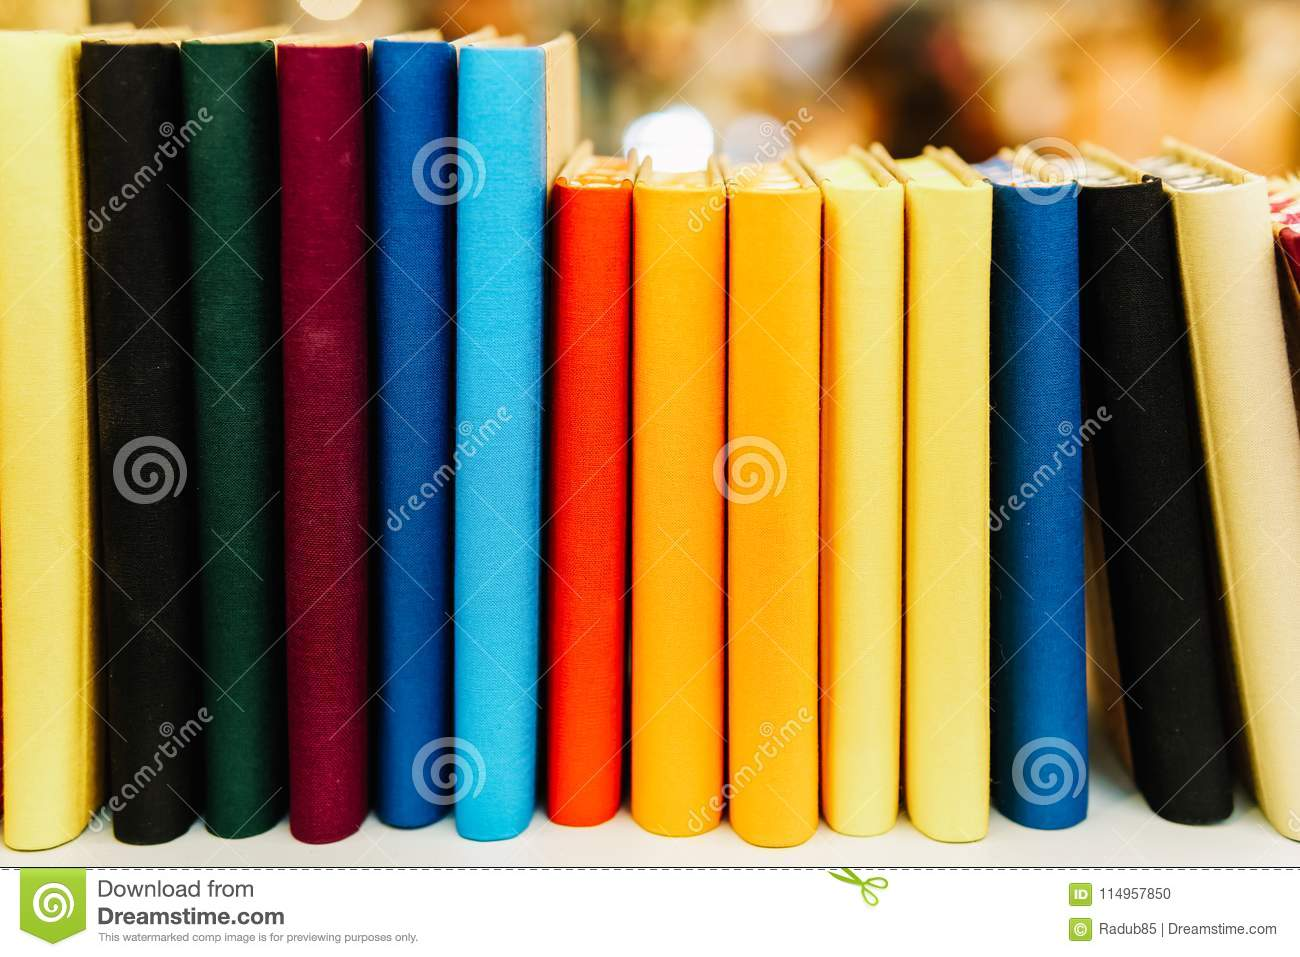 After Libros Orden Colorful Agenda Books In A Row On Shelf Stock Photo Image Of